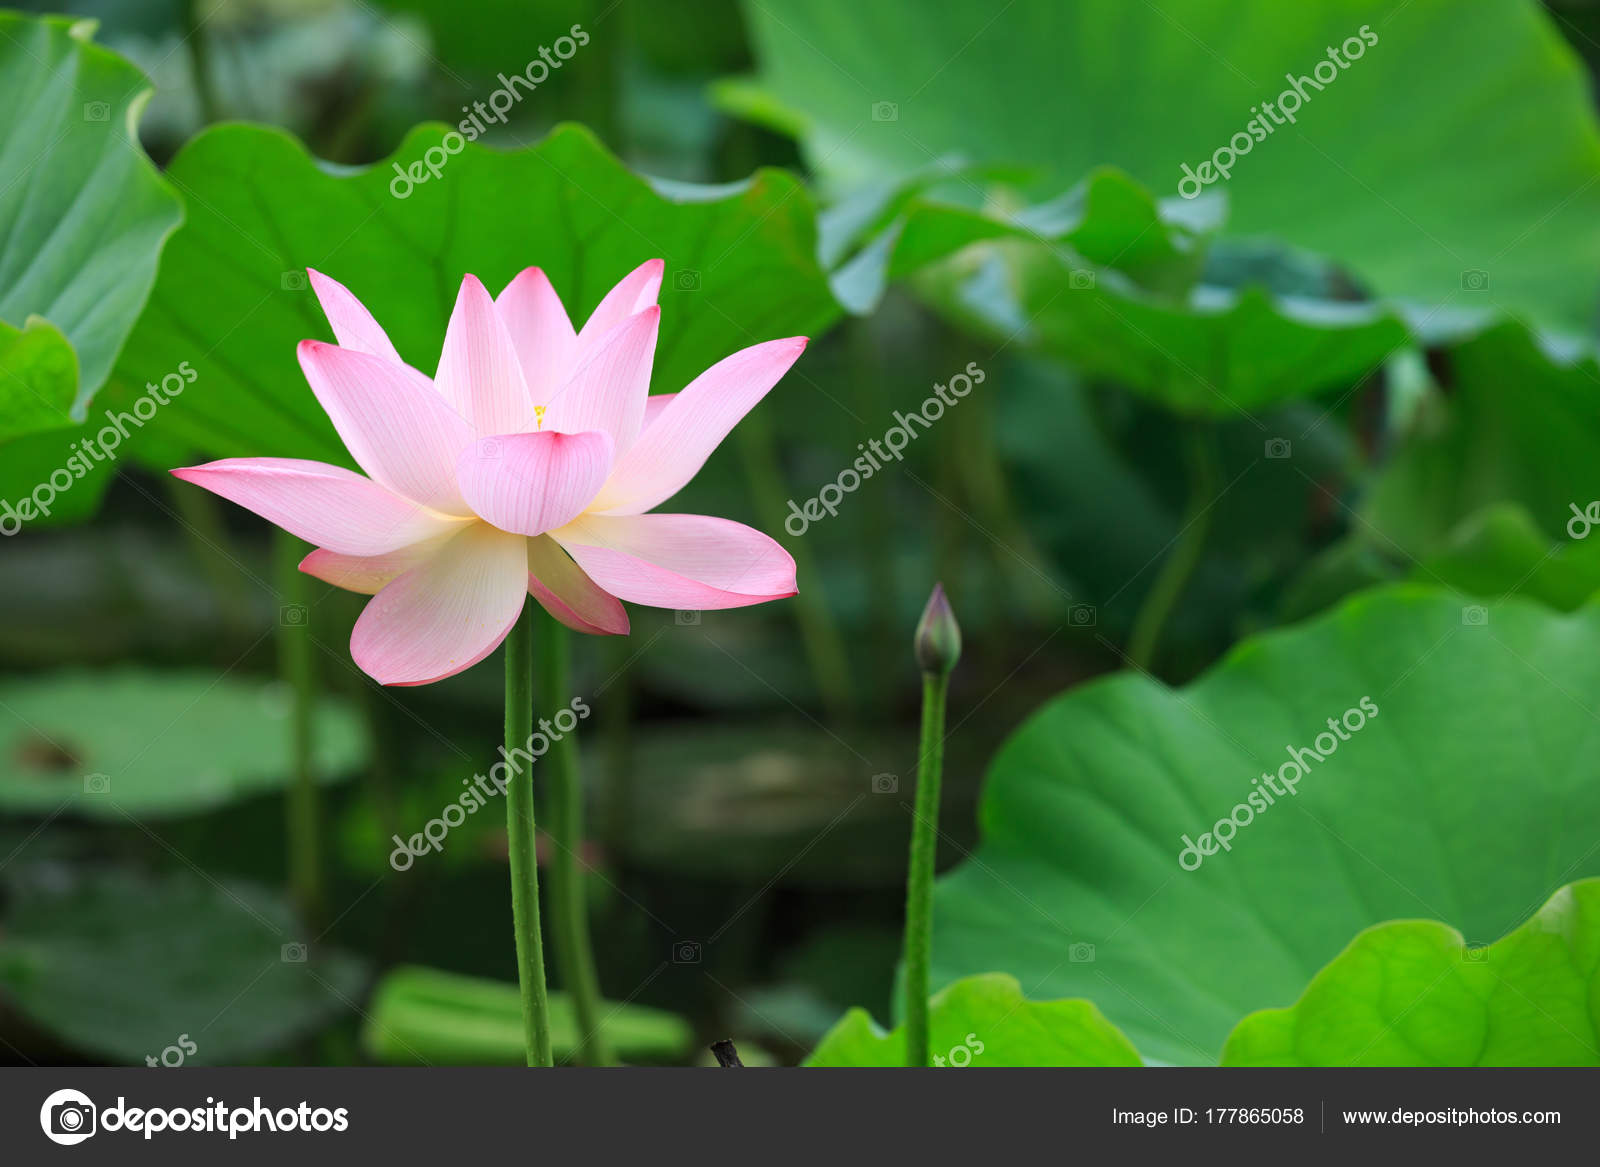 Beautiful pink lotus flower blooming pond stock photo lzf 177865058 beautiful pink lotus flower blooming in pond photo by lzf izmirmasajfo